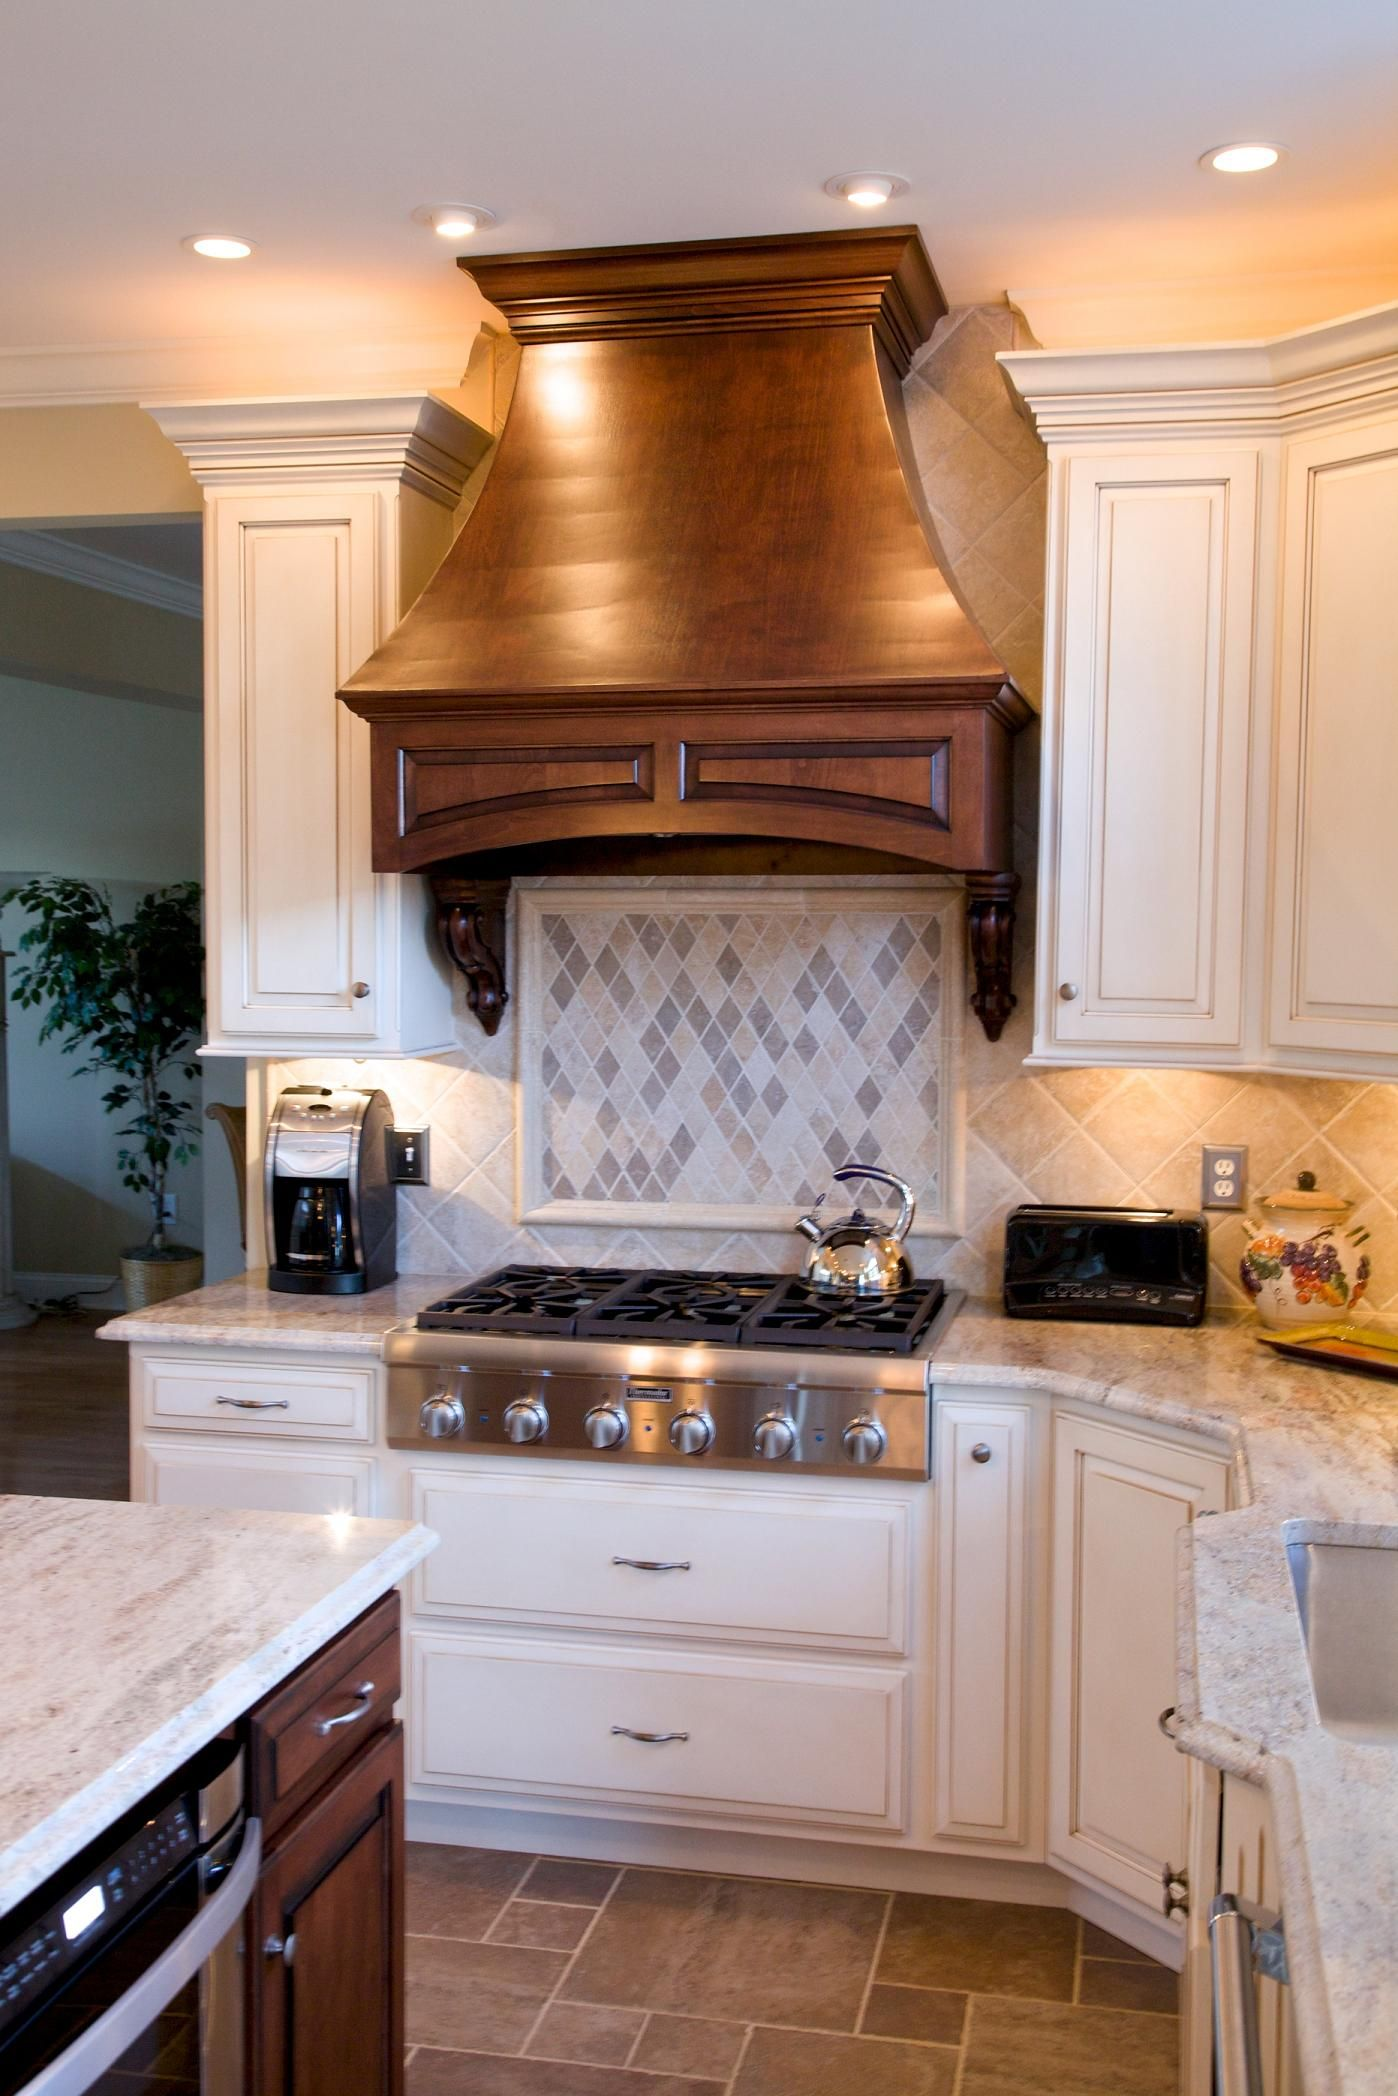 Kashmir Gold granite countertops with natural stone backsplash tile ...